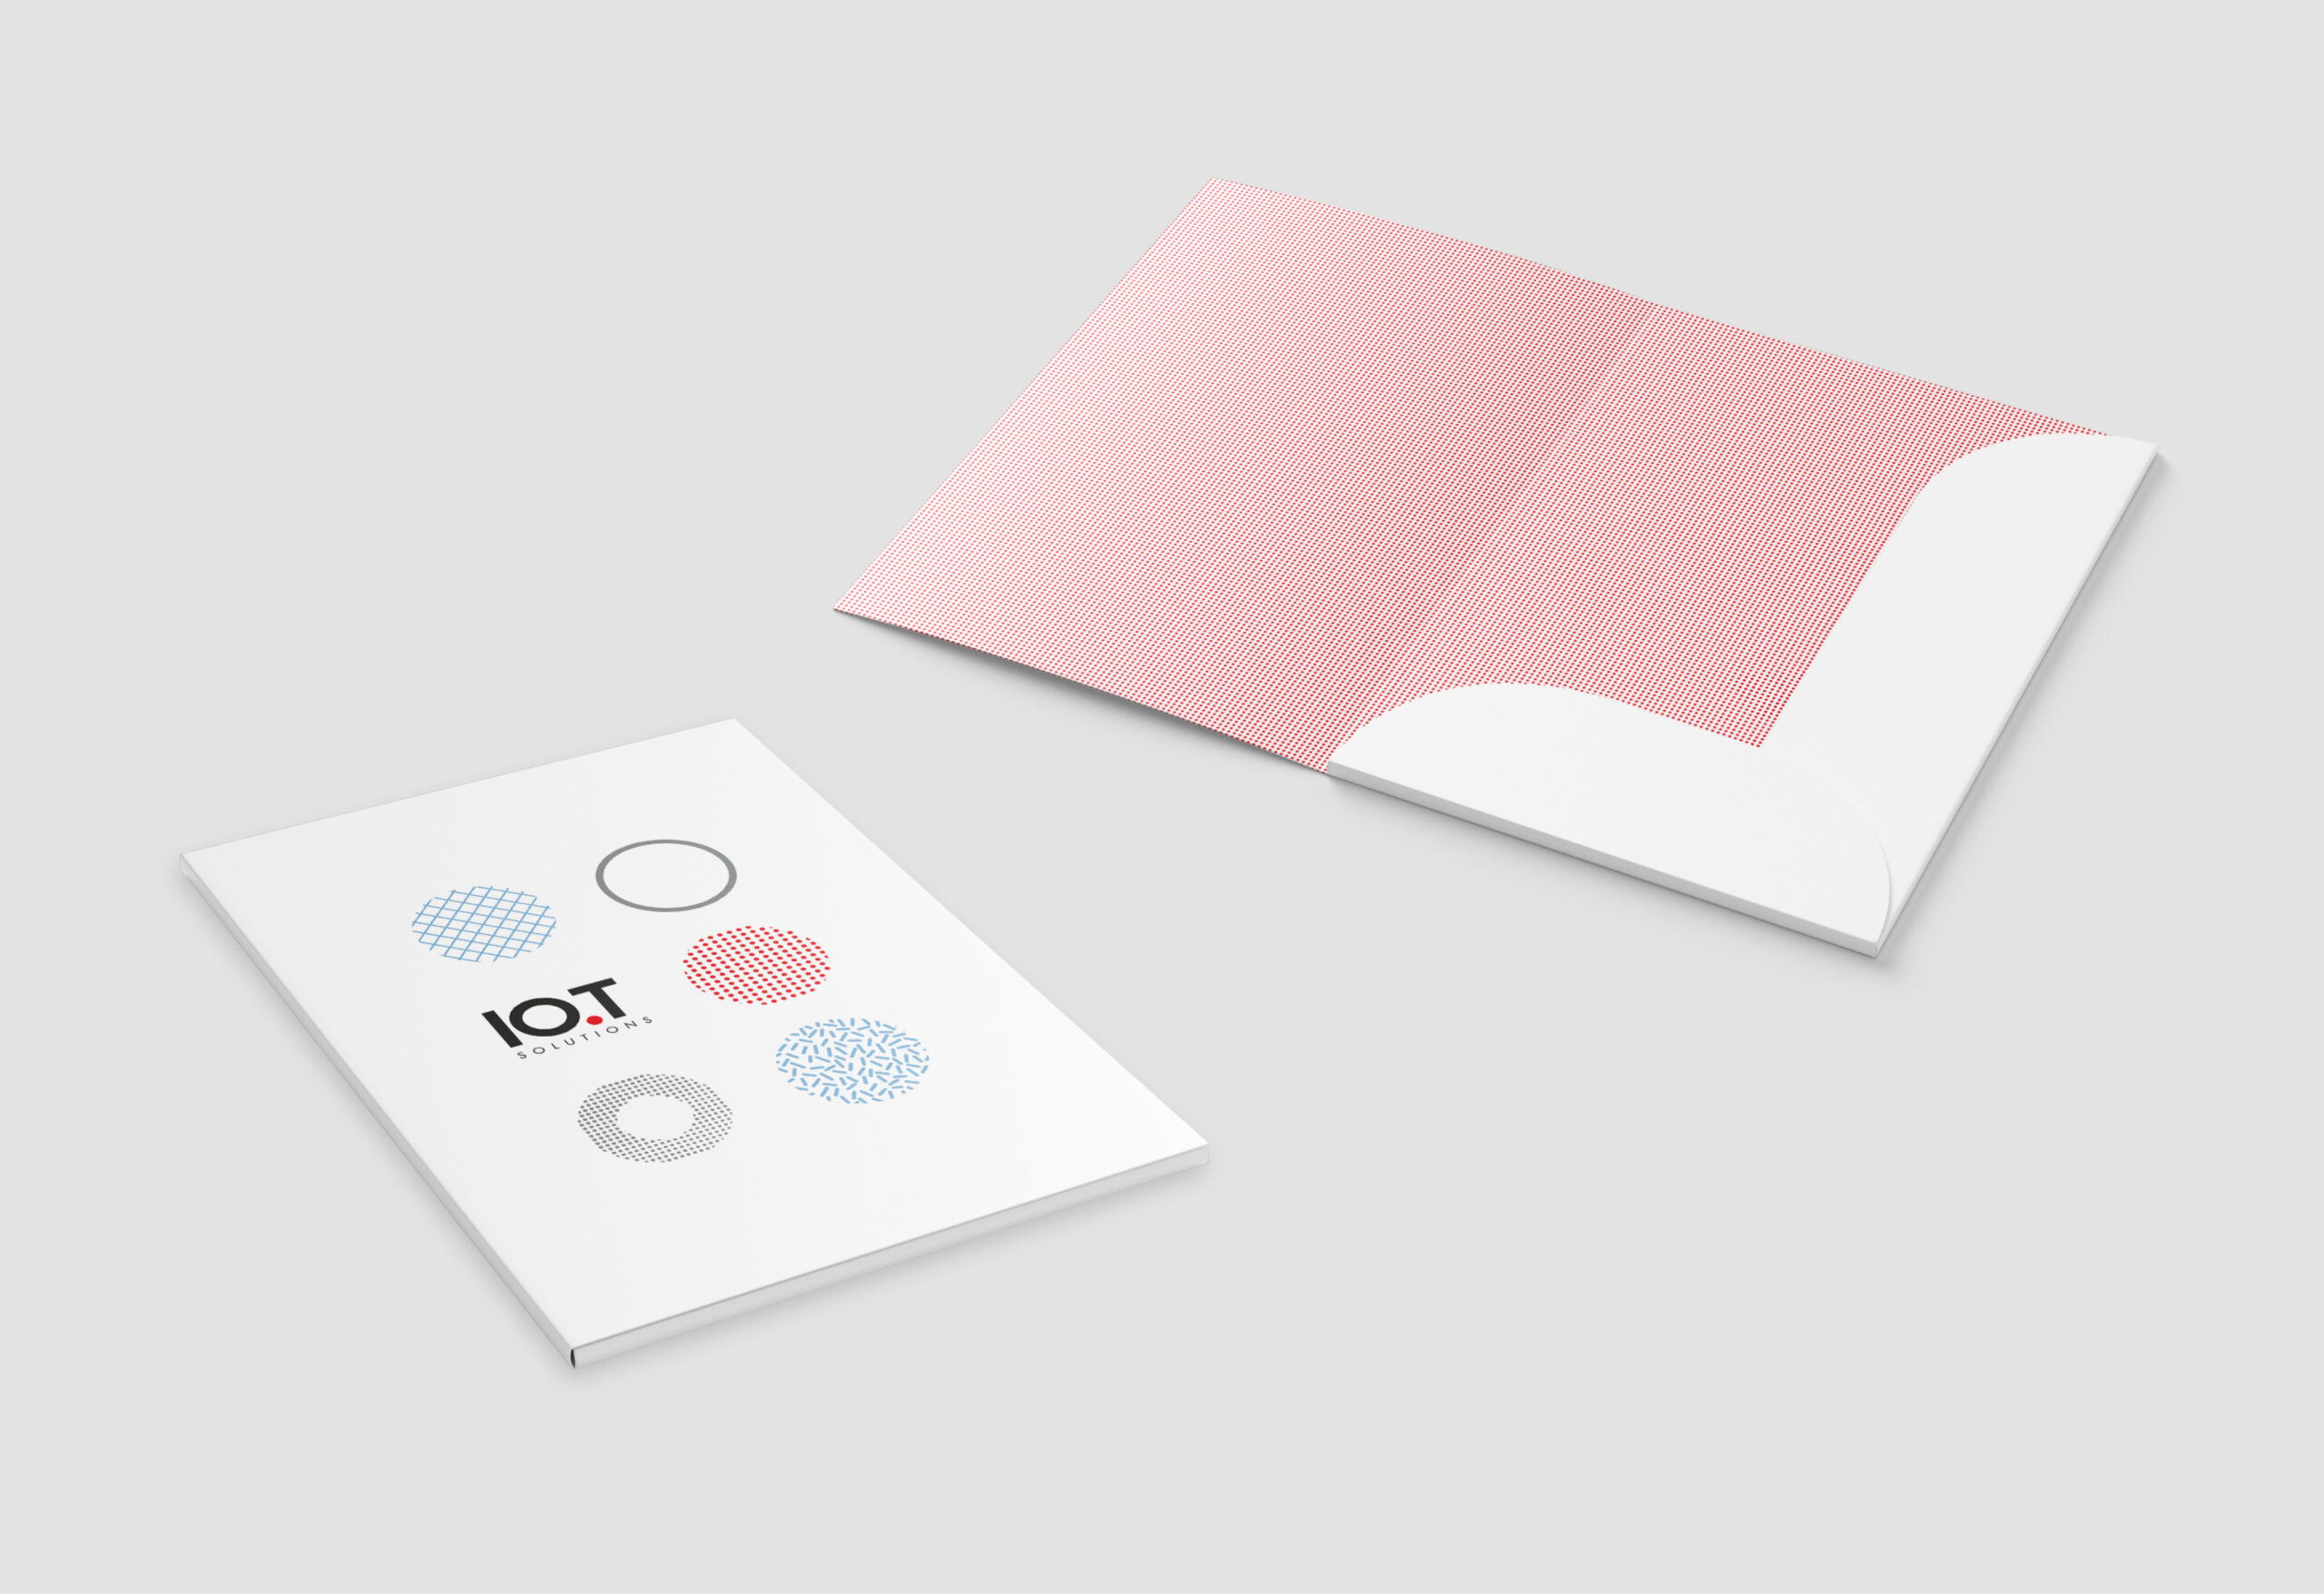 Romanoassociati_Behance_Iot_folder